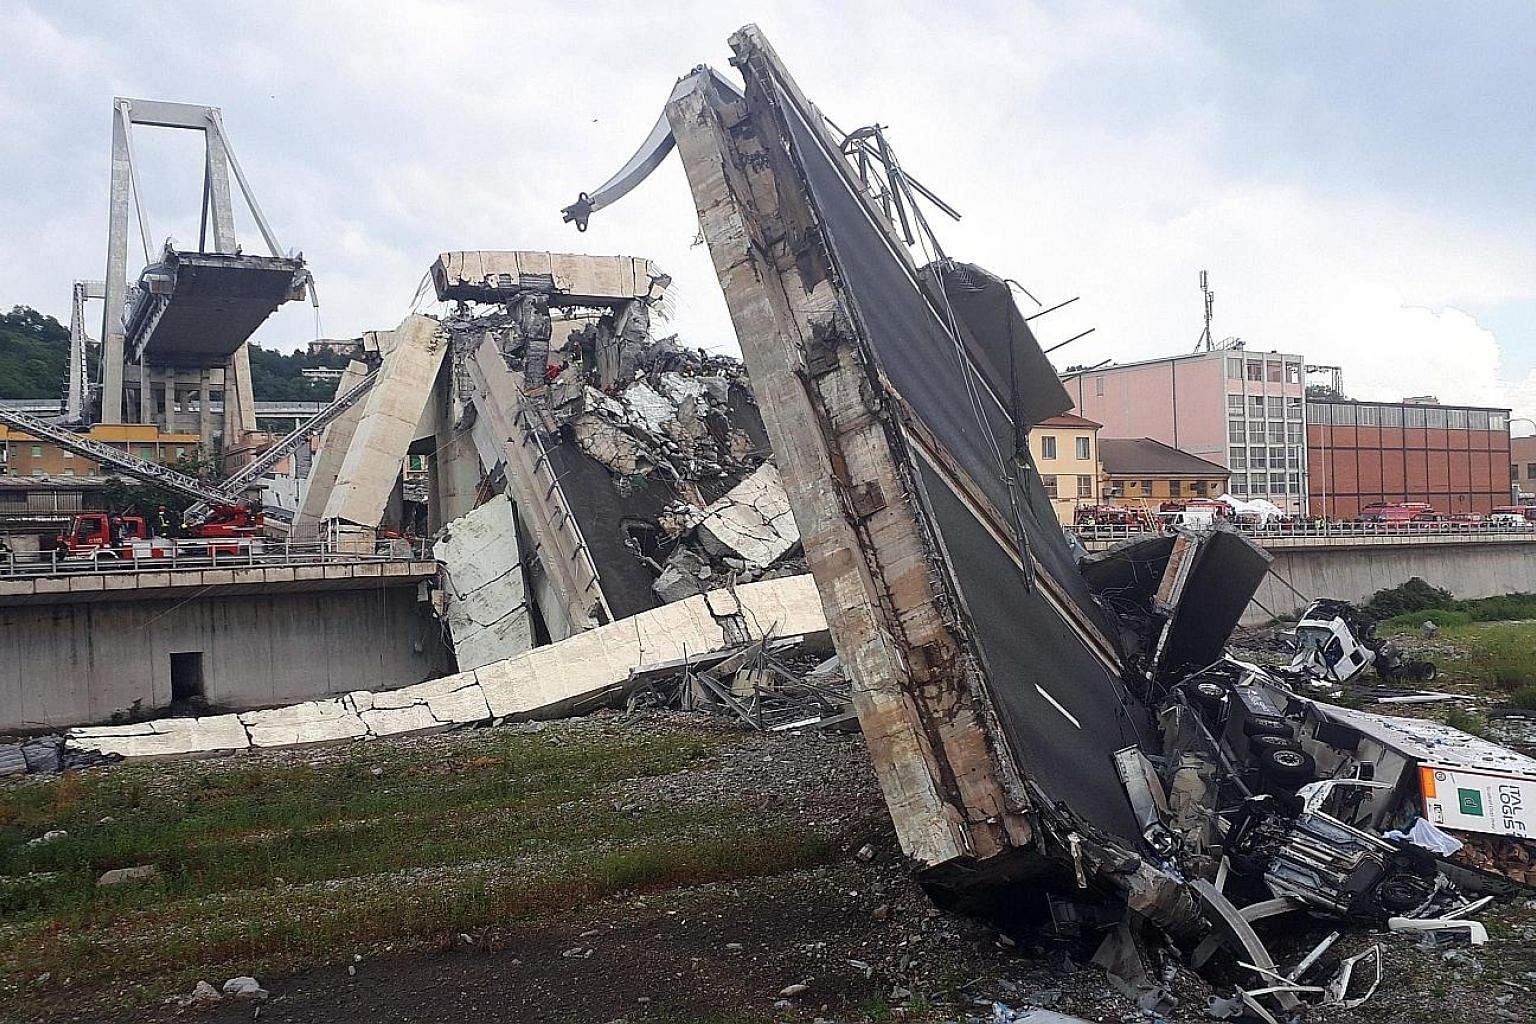 Rescuers at work amid the rubble after a large section of a motorway bridge collapsed during a rainstorm yesterday in the northern Italian city of Genoa. Sky Italia television said four people had been pulled from the rubble.